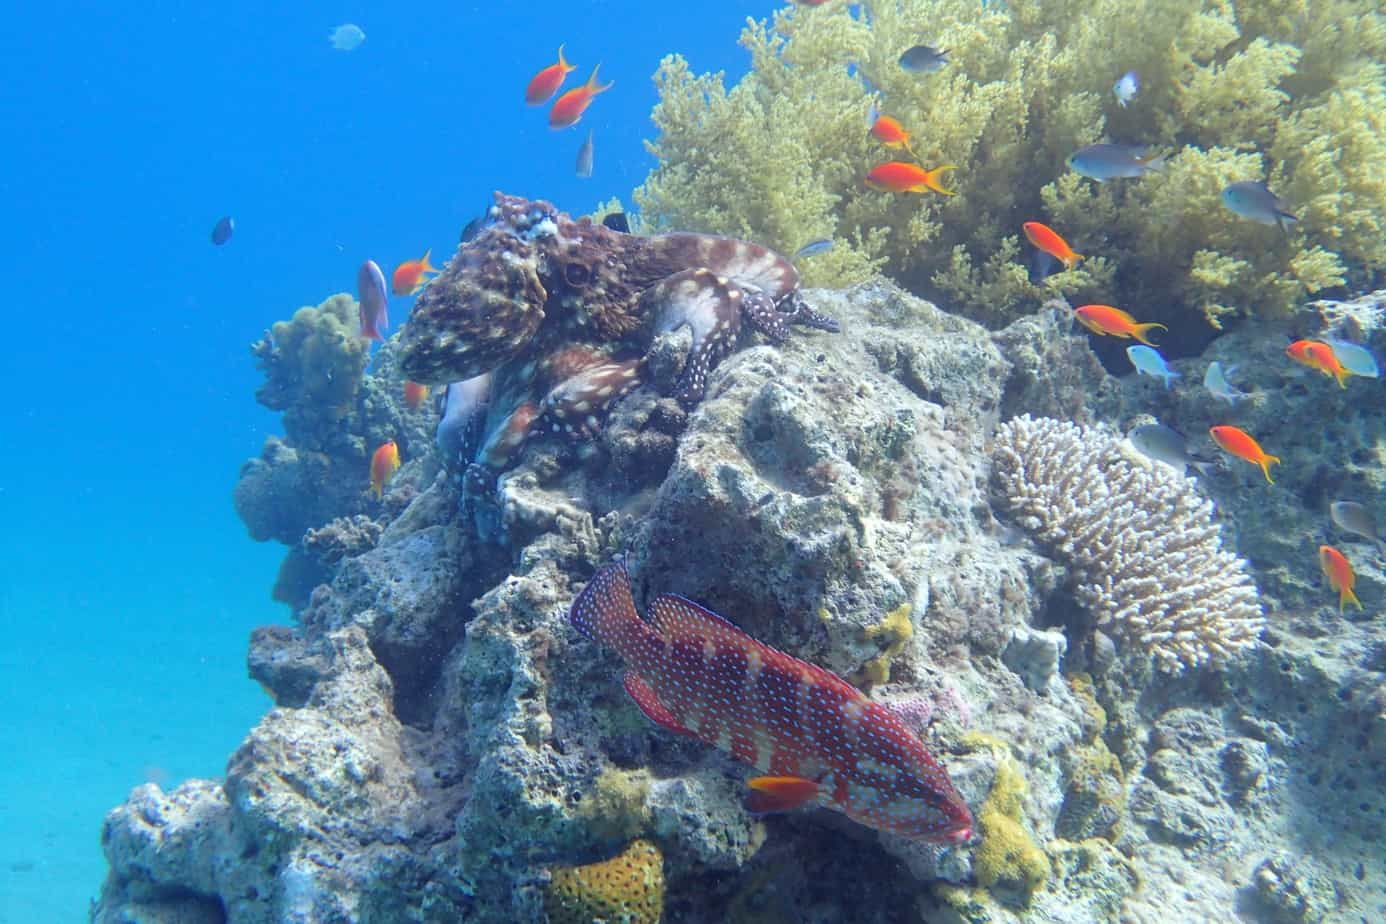 Octopus and coral reef in Eilat